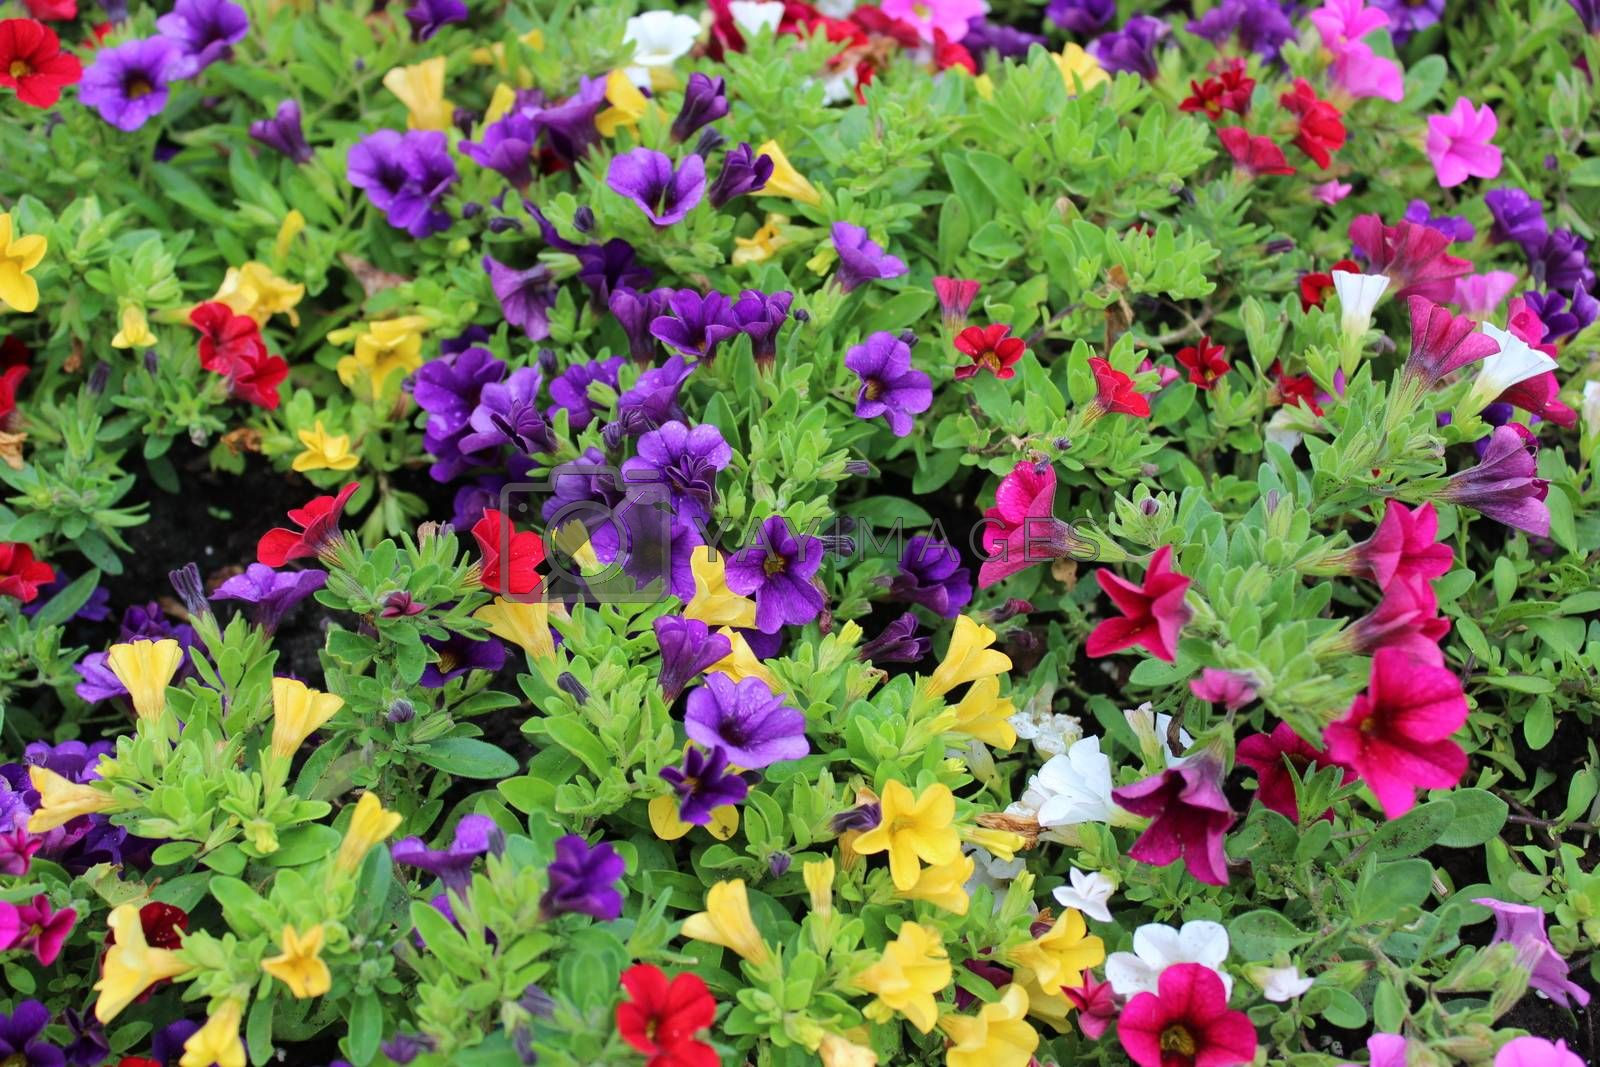 Royalty free image of colorful calibrachoa plants in the garden by martina_unbehauen